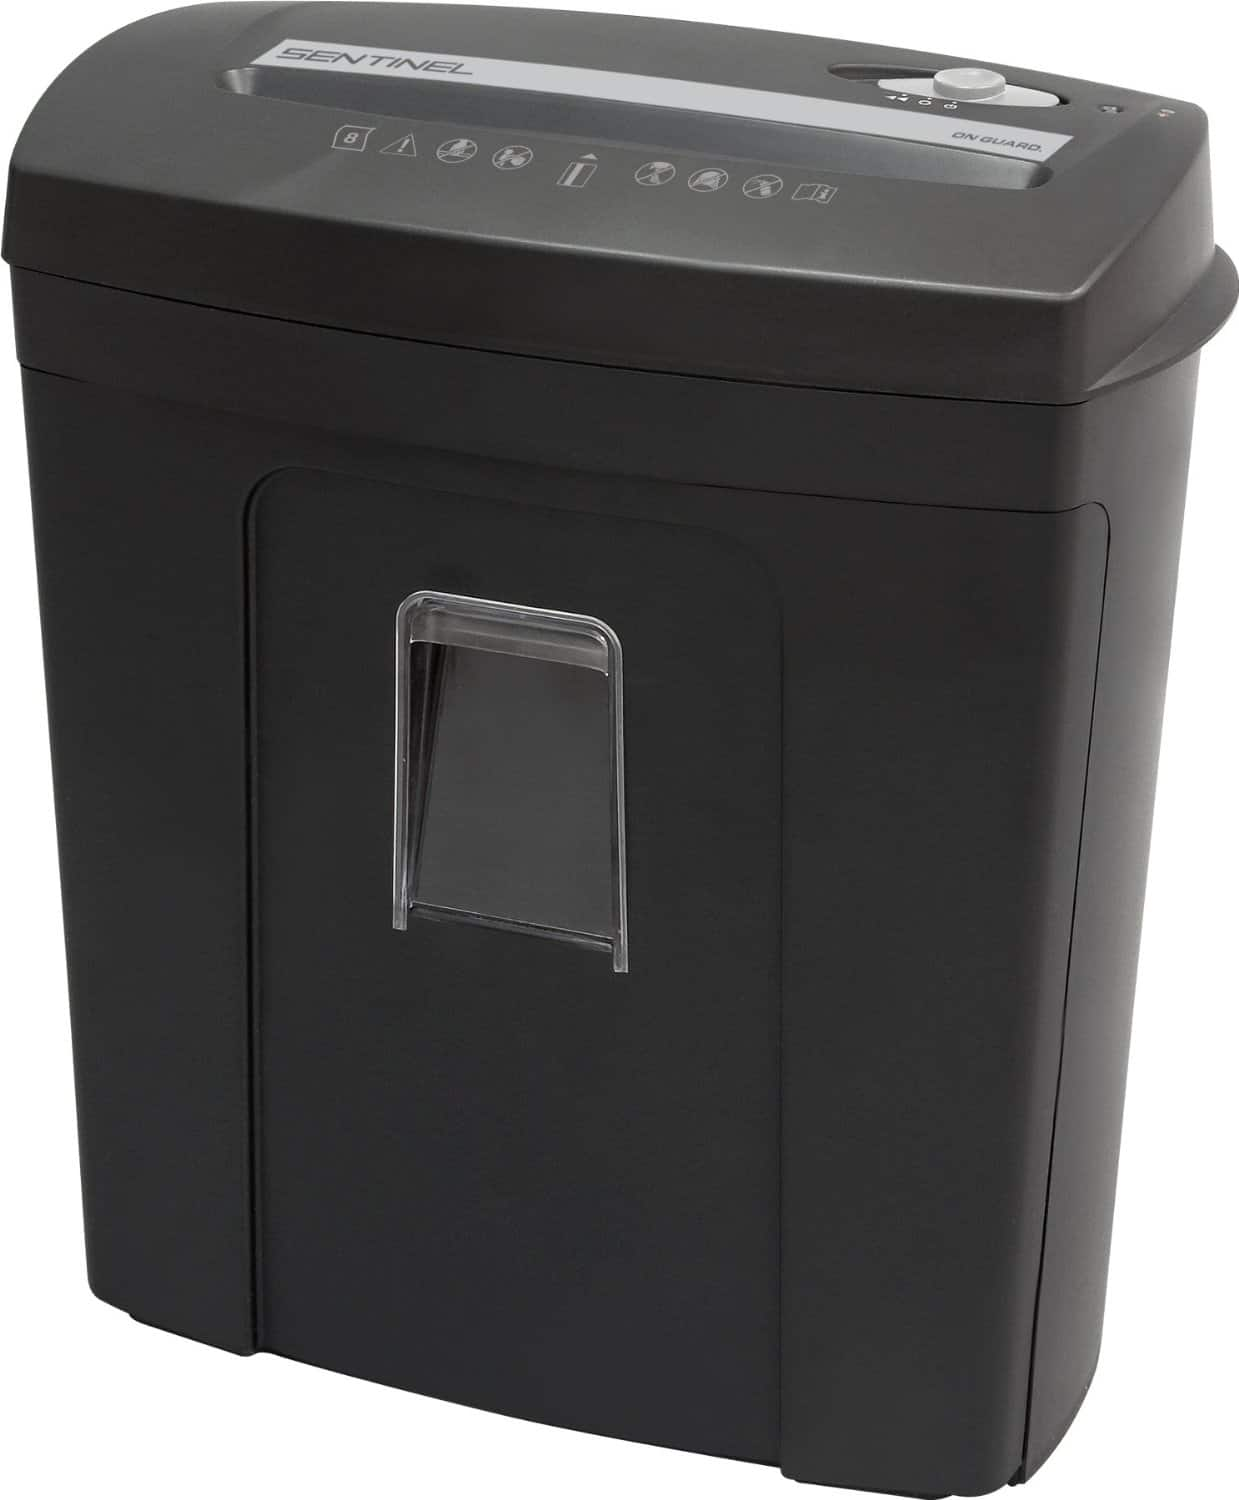 staples paper shredder 21 gallon recyclable paper shredder bags, 1765030 by swingline  shred as  many as 600 sheets, including those fastened with paper clips or staples simply .